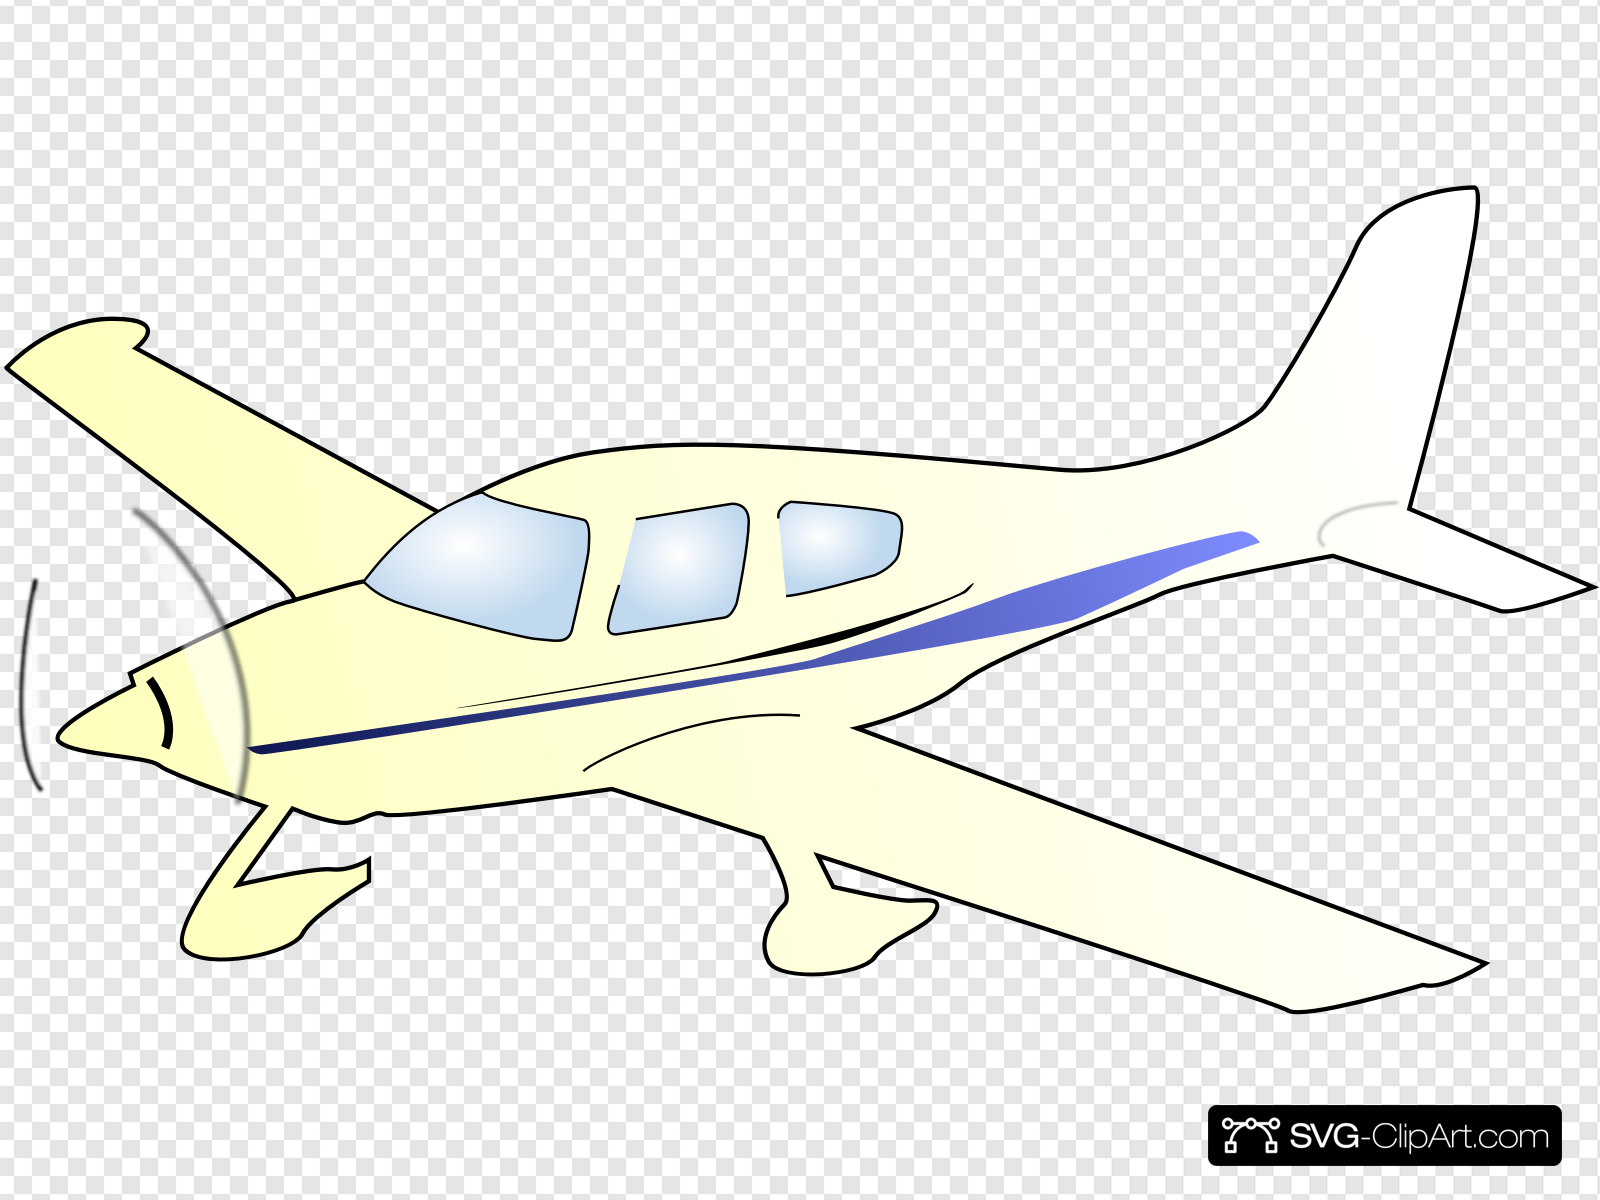 Cessna Plane Clip art, Icon and SVG.